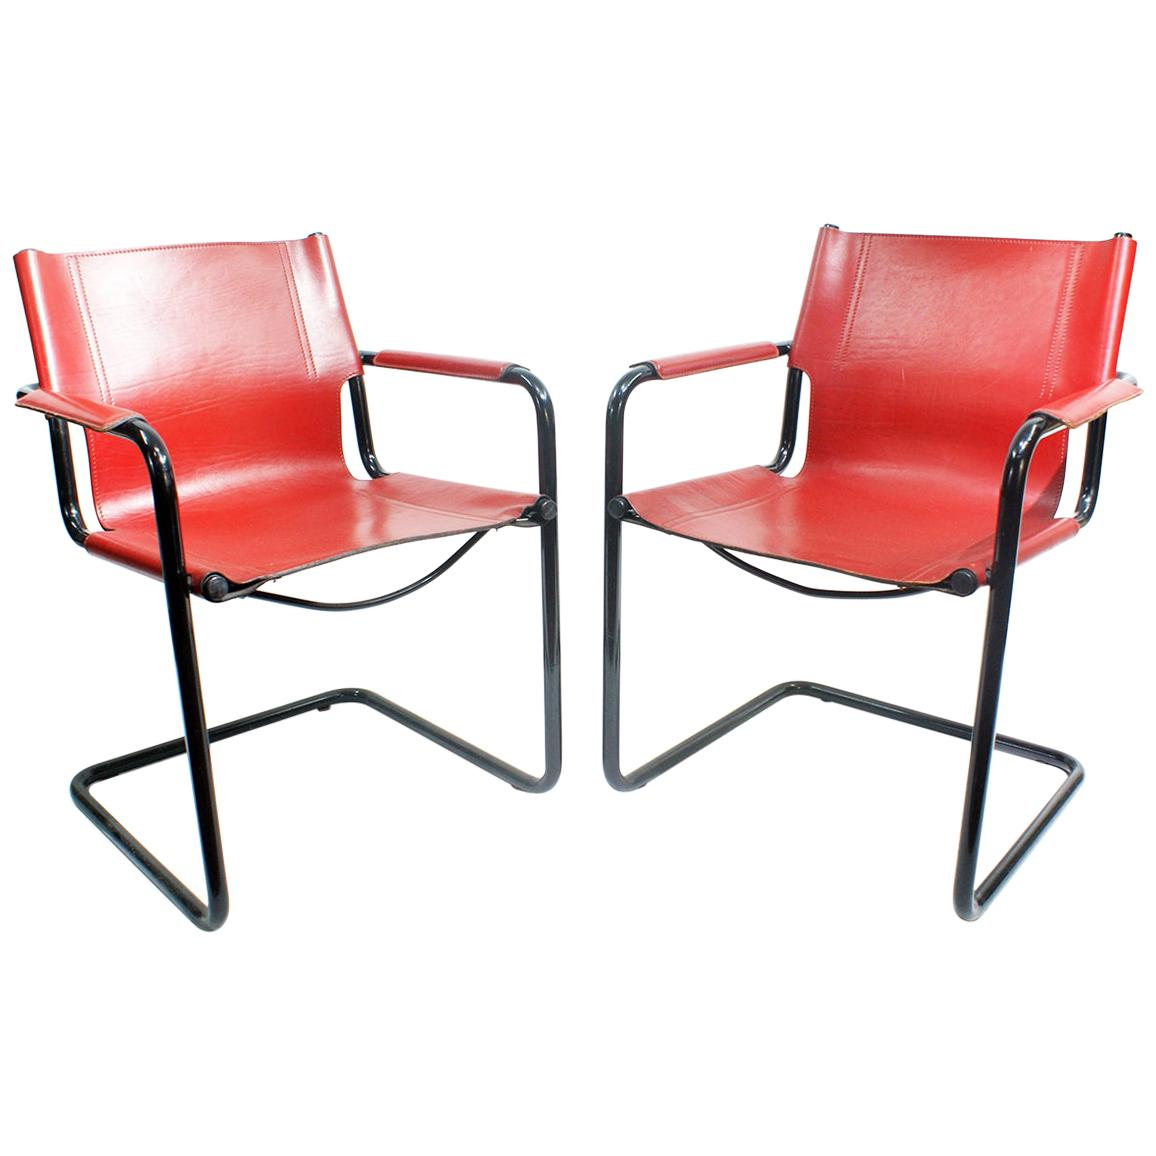 Pair of Cantilever Visitor Side Chairs, Signed Matteo Grassi, Italy, 1970s